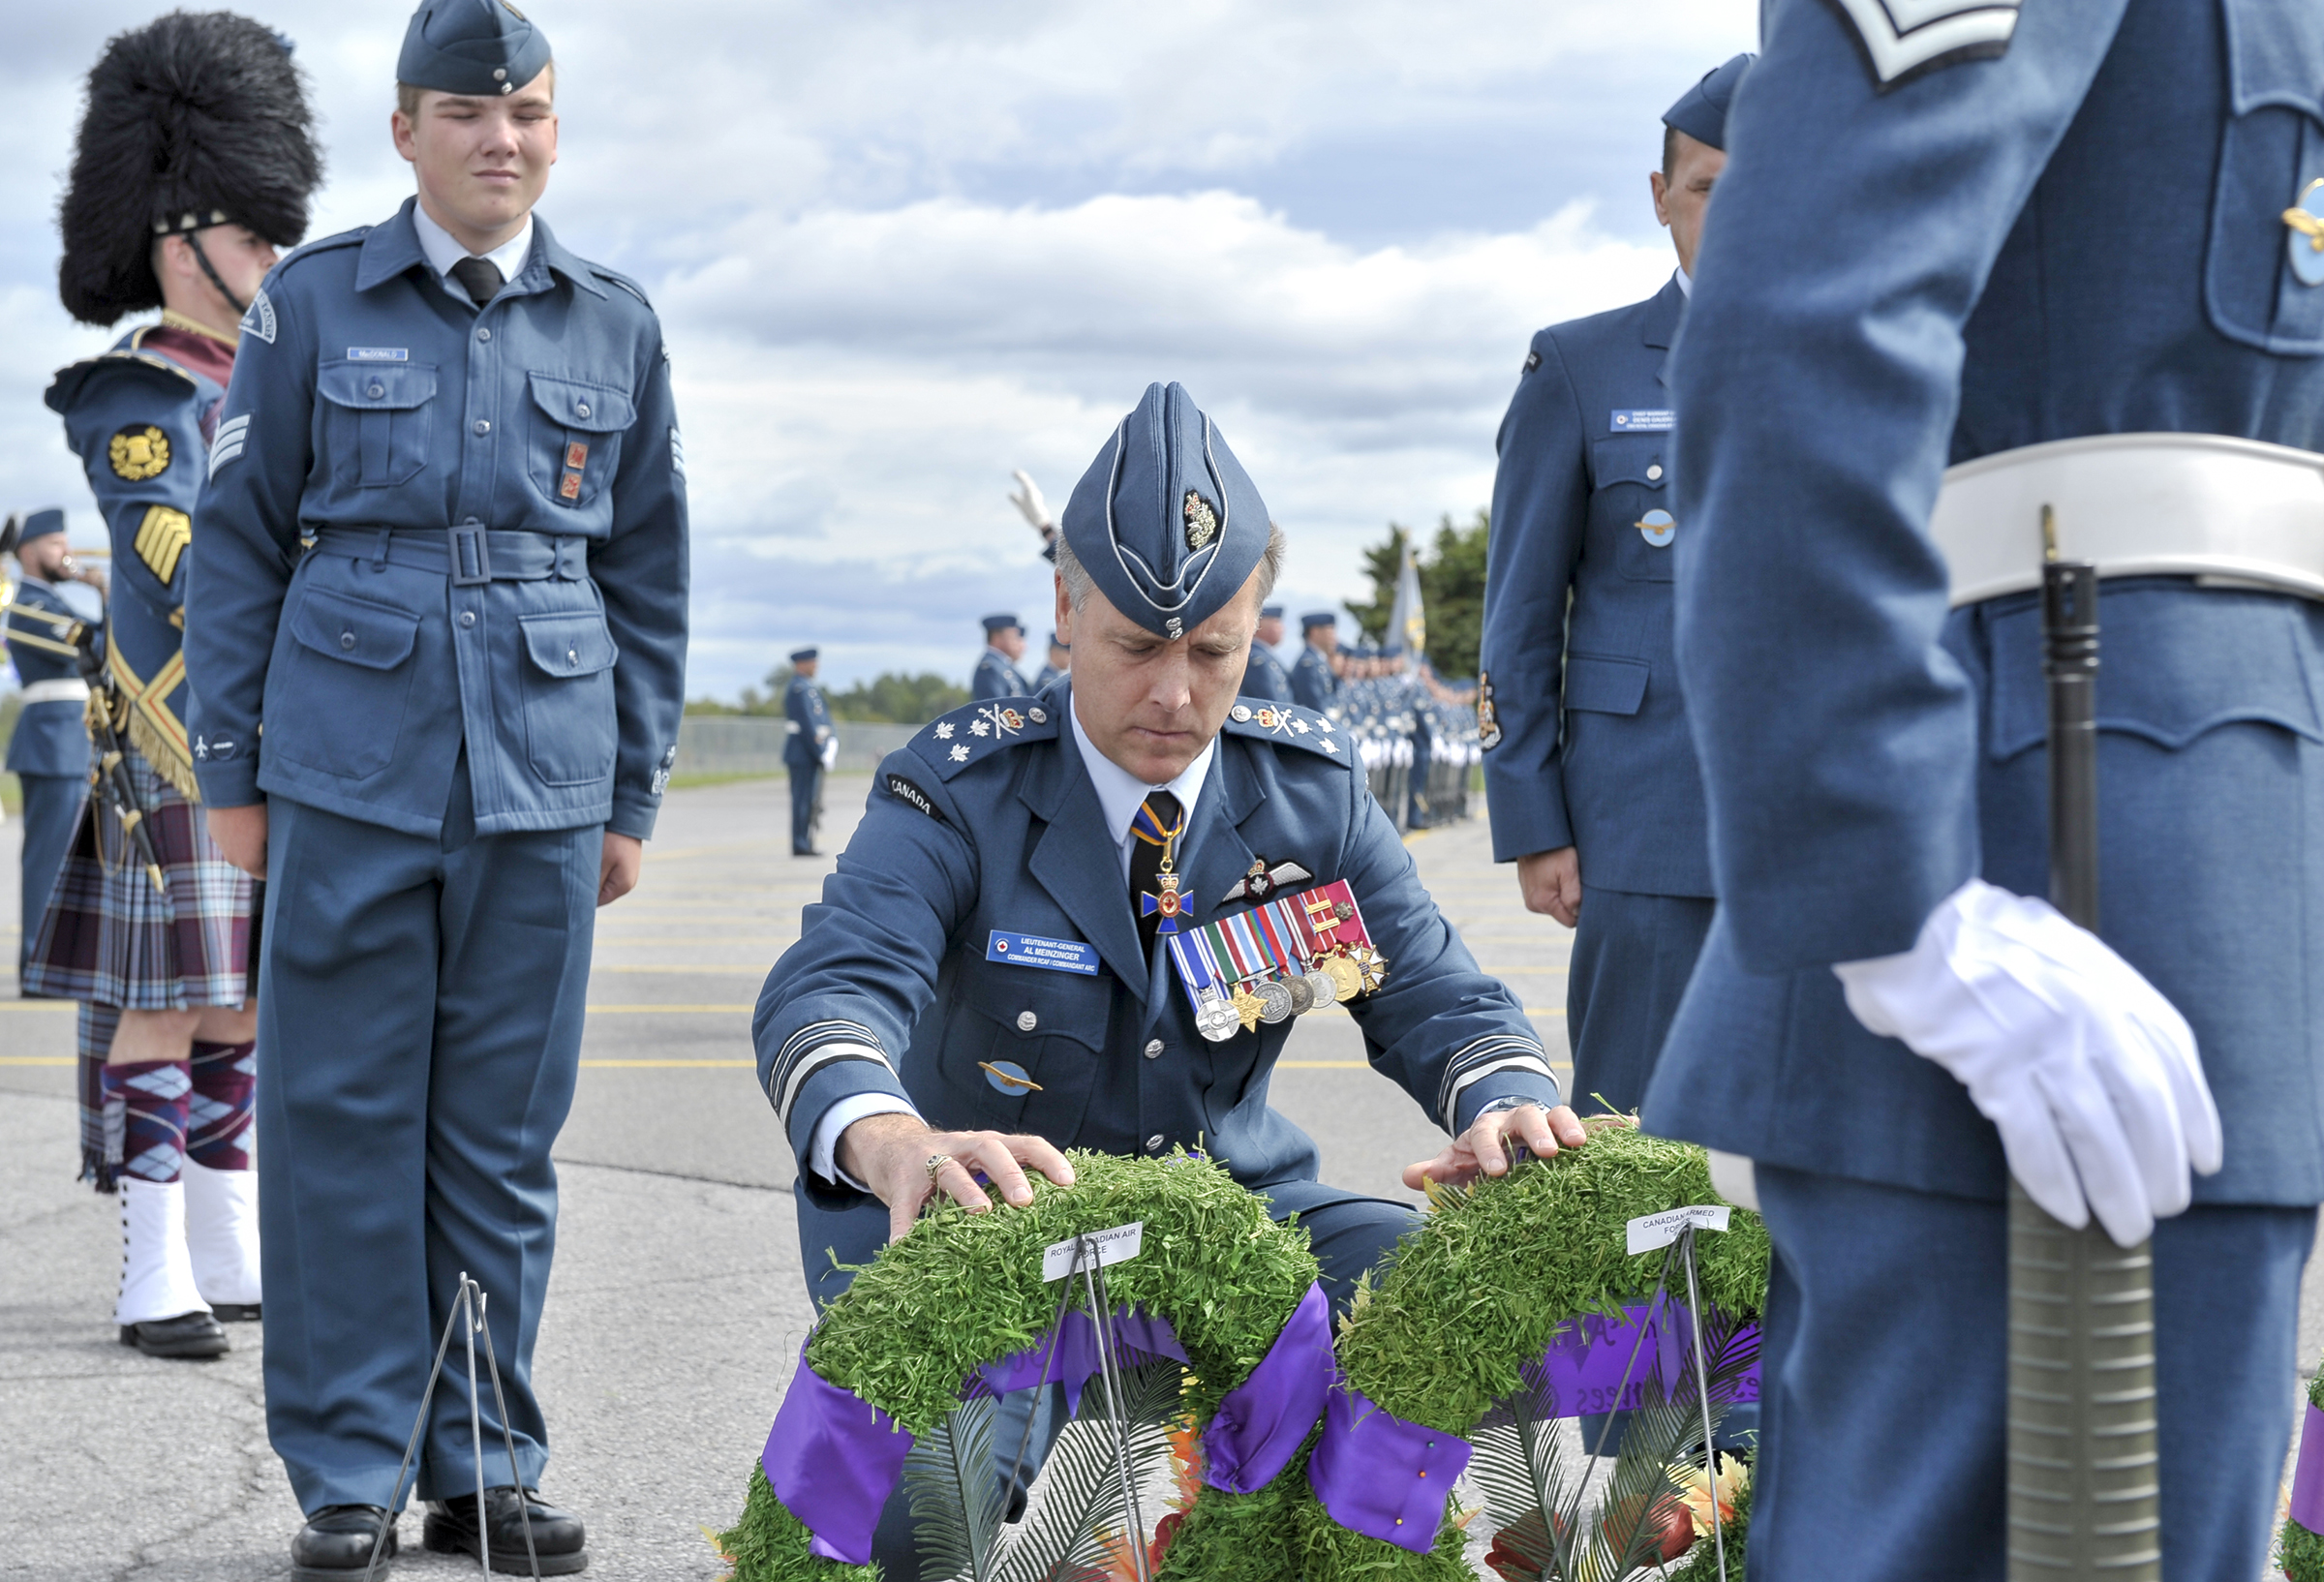 Lieutenant-General Al Meinzinger, commander of the RCAF, accompanied by  Sergeant Alexander MacDonald, a member of 5 Cyclone Royal Canadian Air Cadet Squadron, lays wreaths during the national Battle of Britain parade held September 15, 2019, at the Canada Aviation and Space Museum in Ottawa, Ontario. PHOTO: Aviator Jacob Hanlon, FA01-2019-0008-007